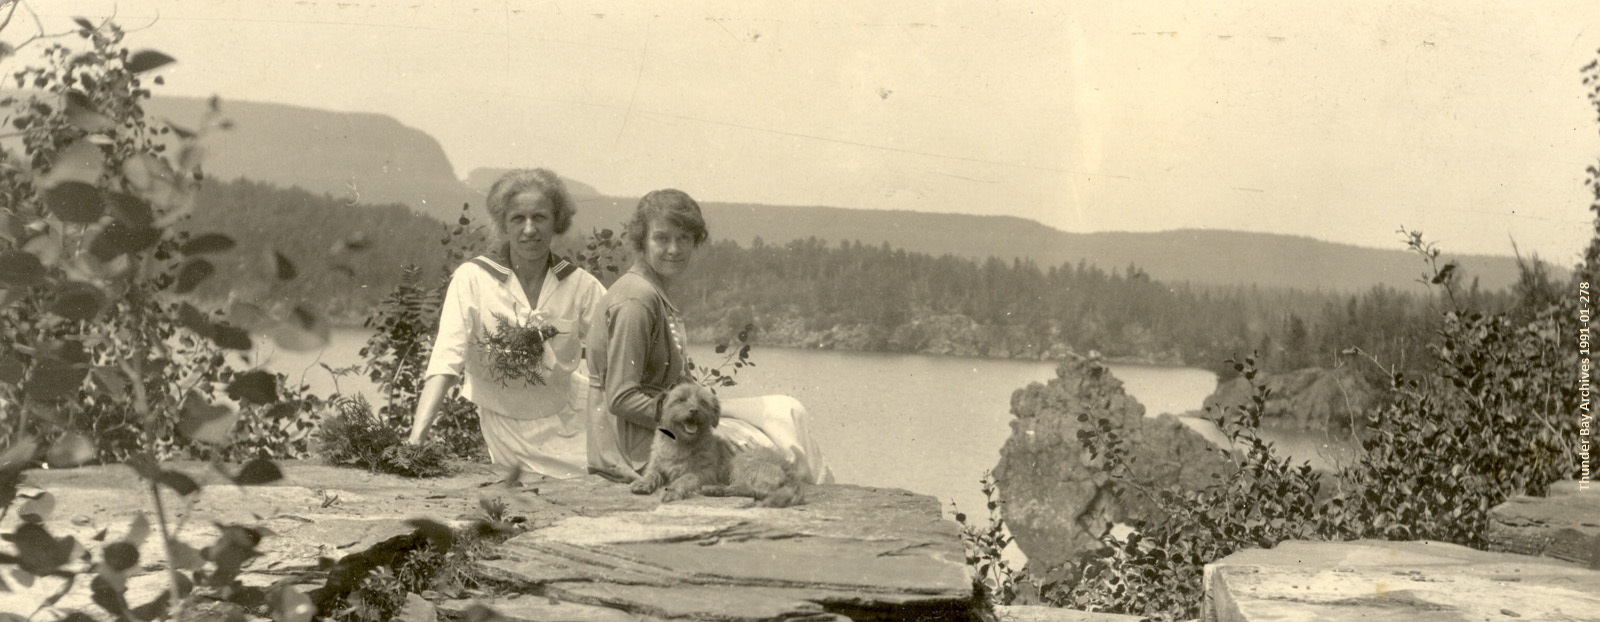 black and white photo of 1910s women and dog sitting on rock overlooking water